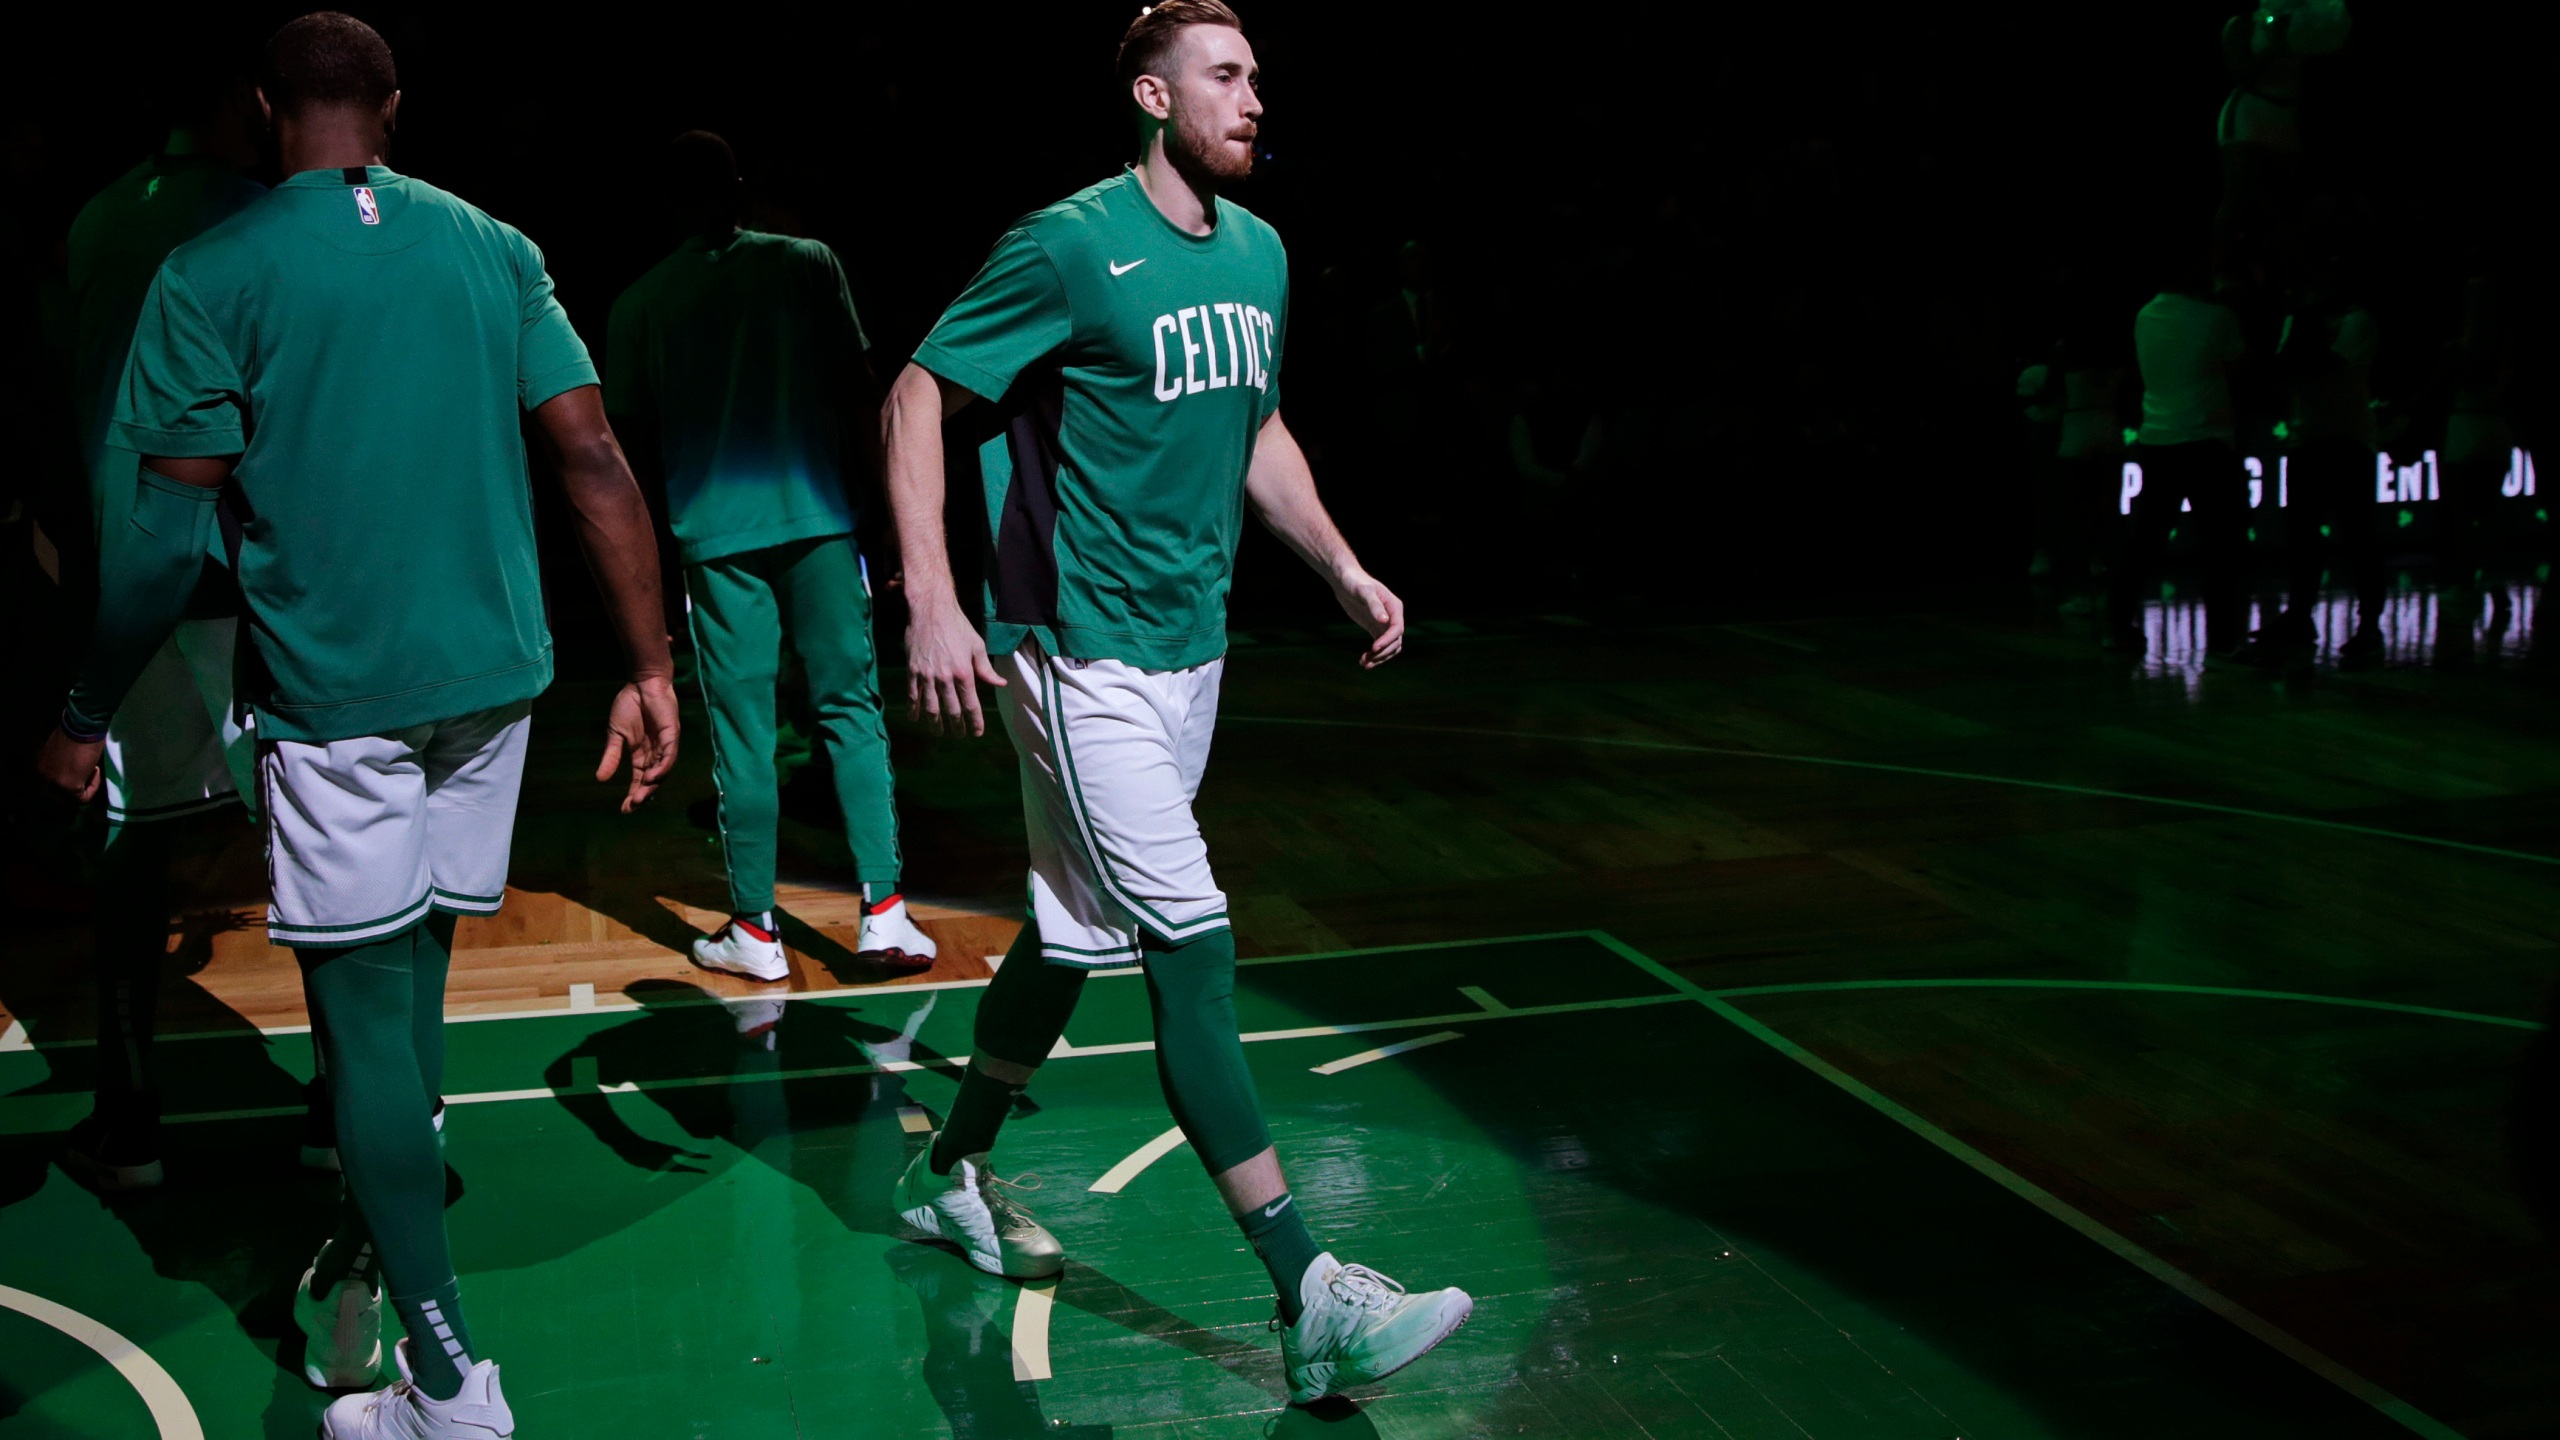 Celtics F Hayward Returns From Injury Against Cavaliers Krqe News 13